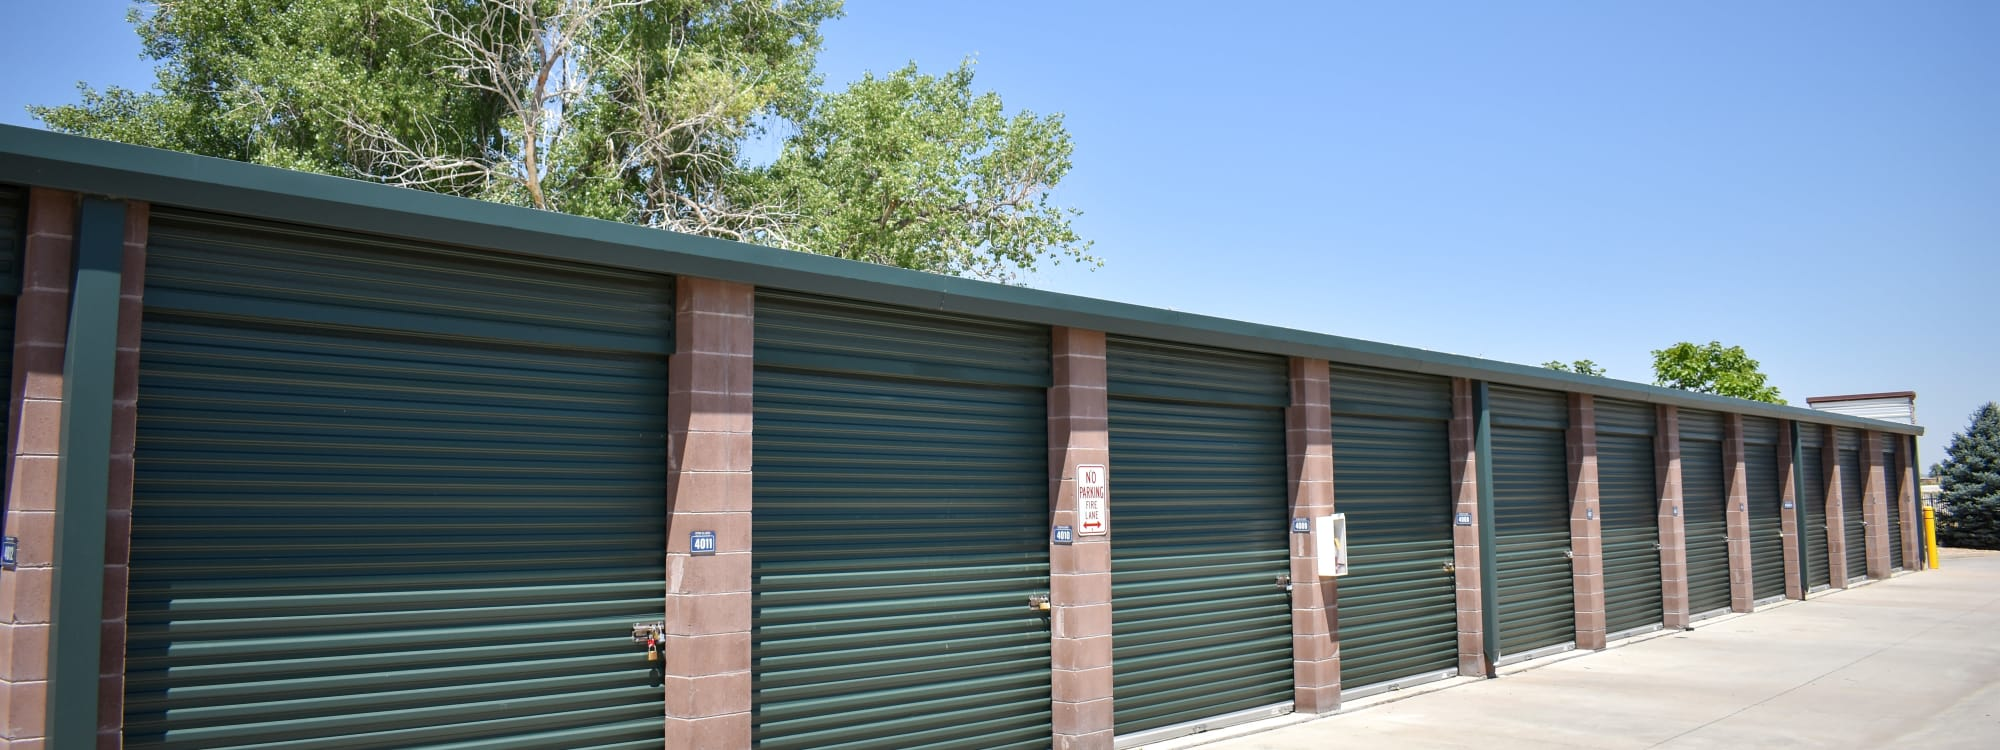 Self storage options at STOR-N-LOCK Self Storage in Henderson, Colorado